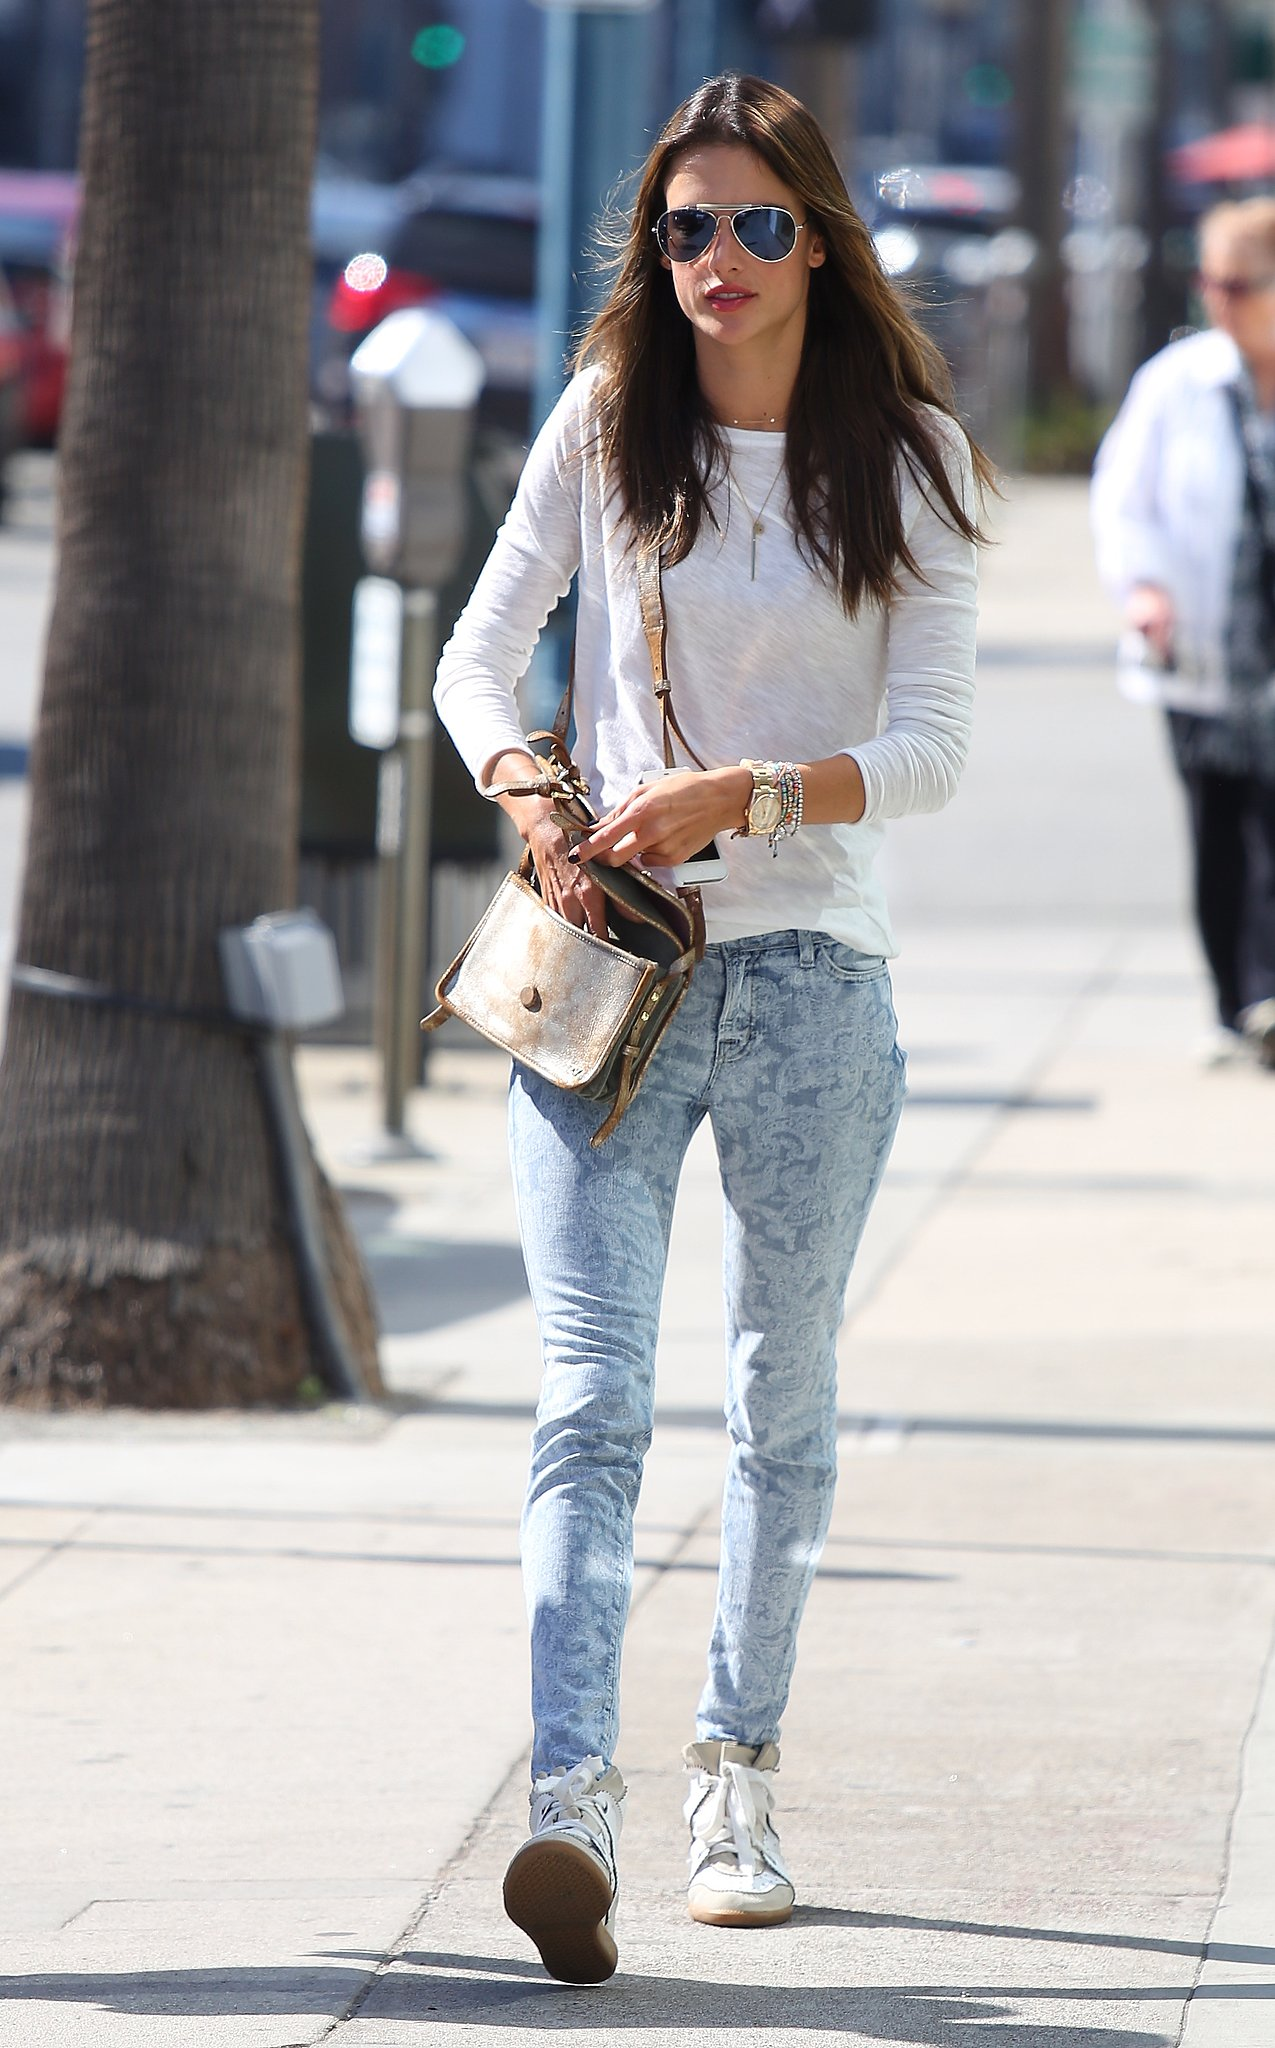 Alessandra Ambrosio's paisley-print jeans were the star of her LA look, while a white long-sleeved tee and white Isabel Maran